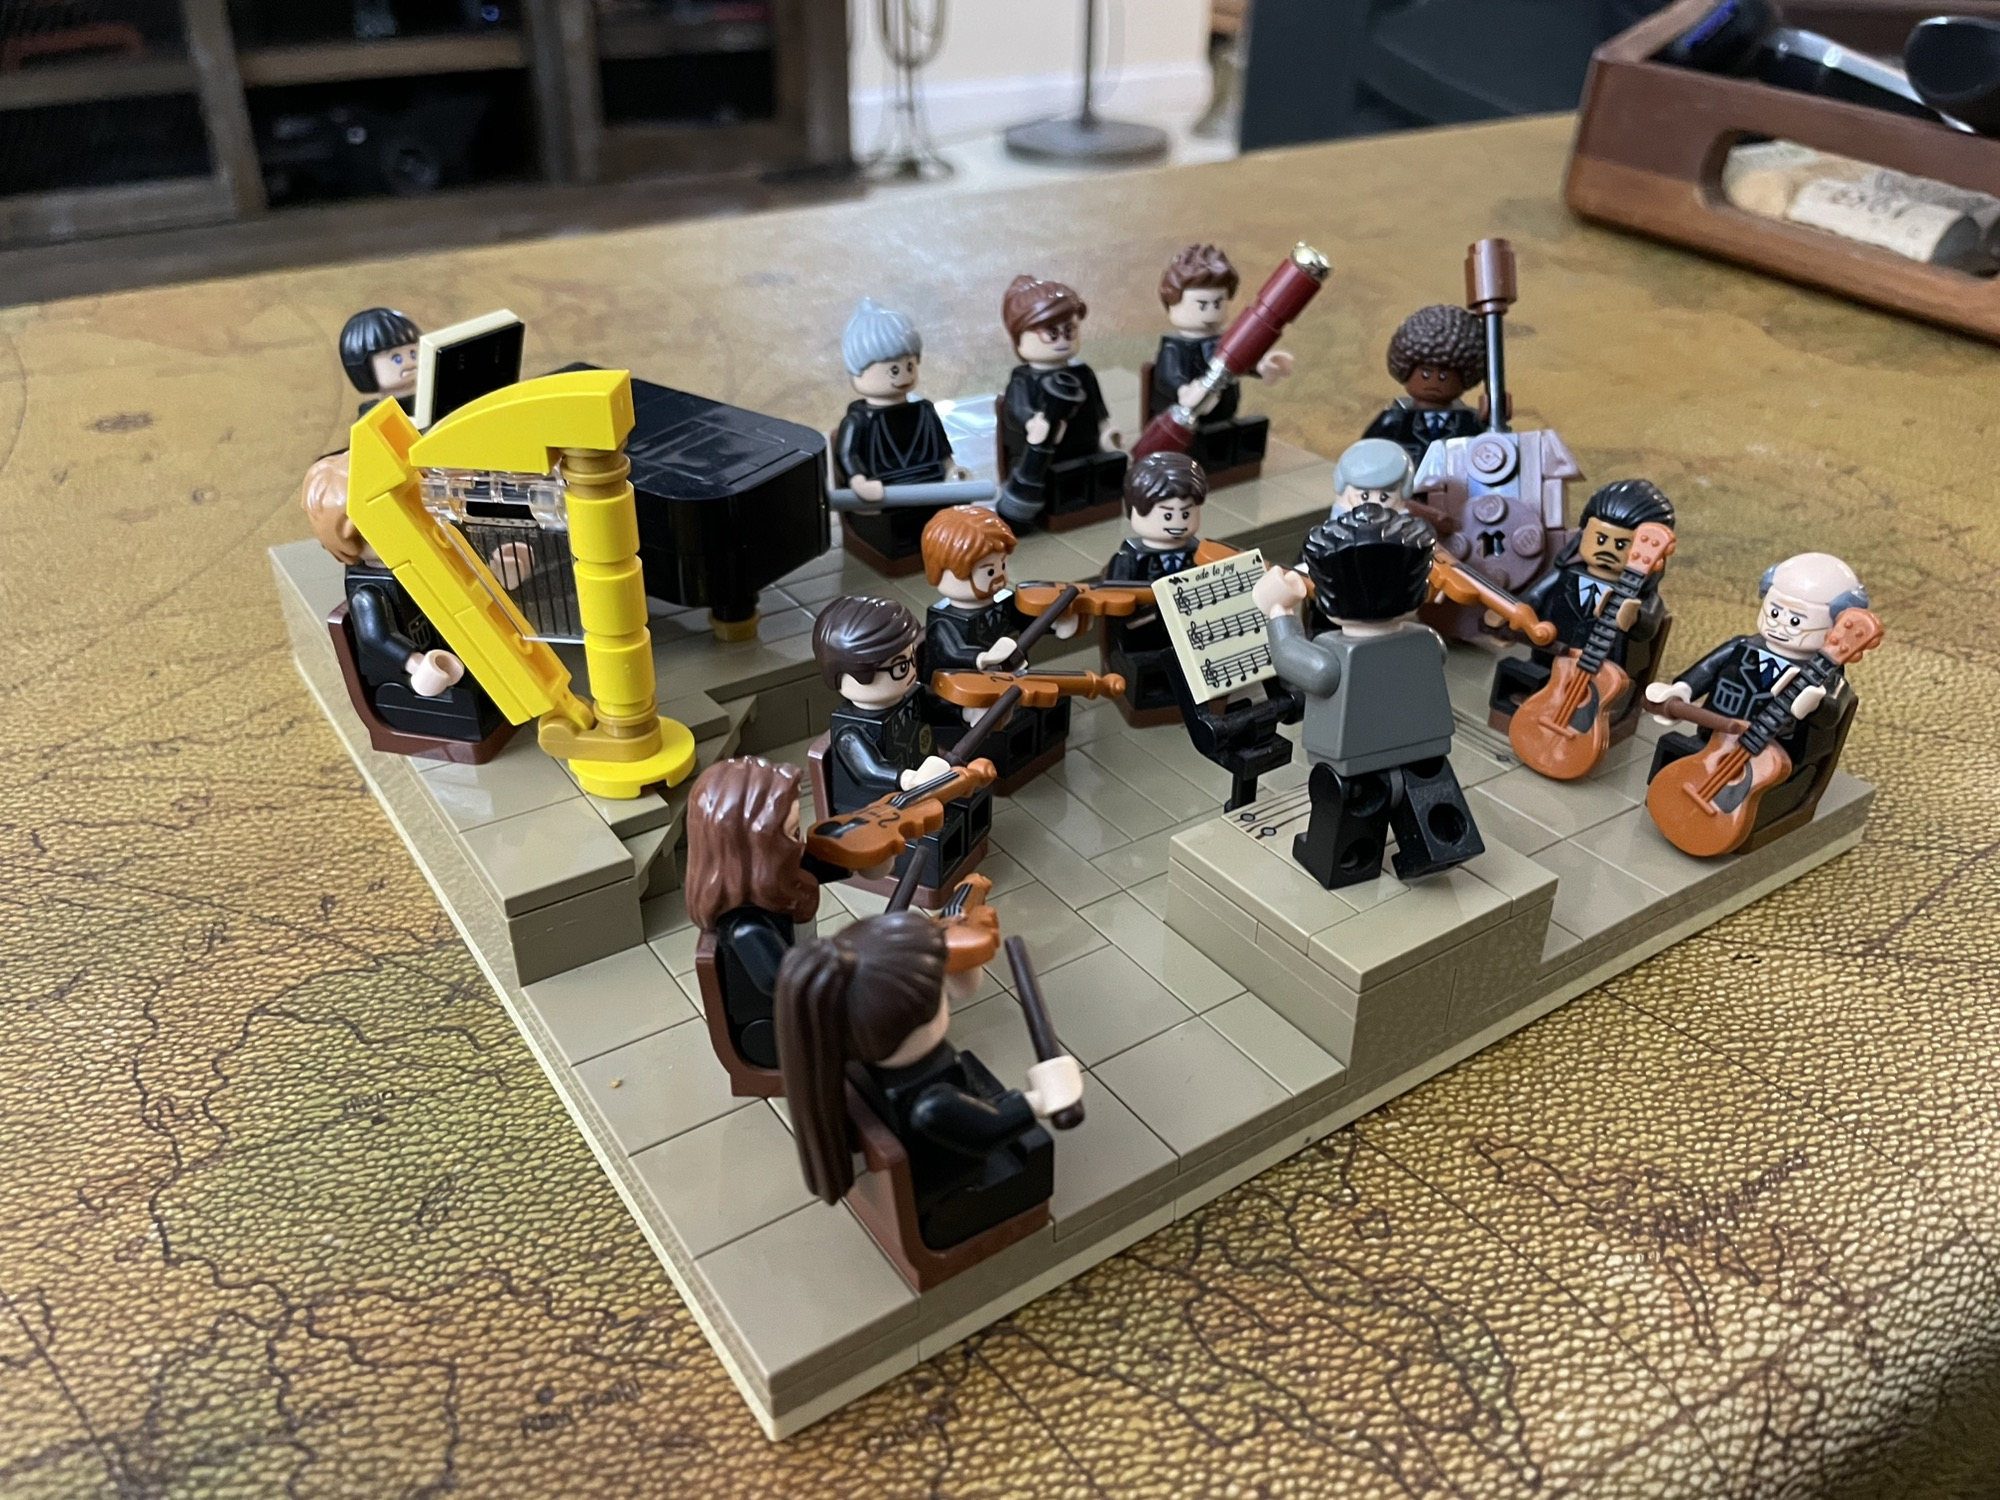 Thanks for the harp, Lego!